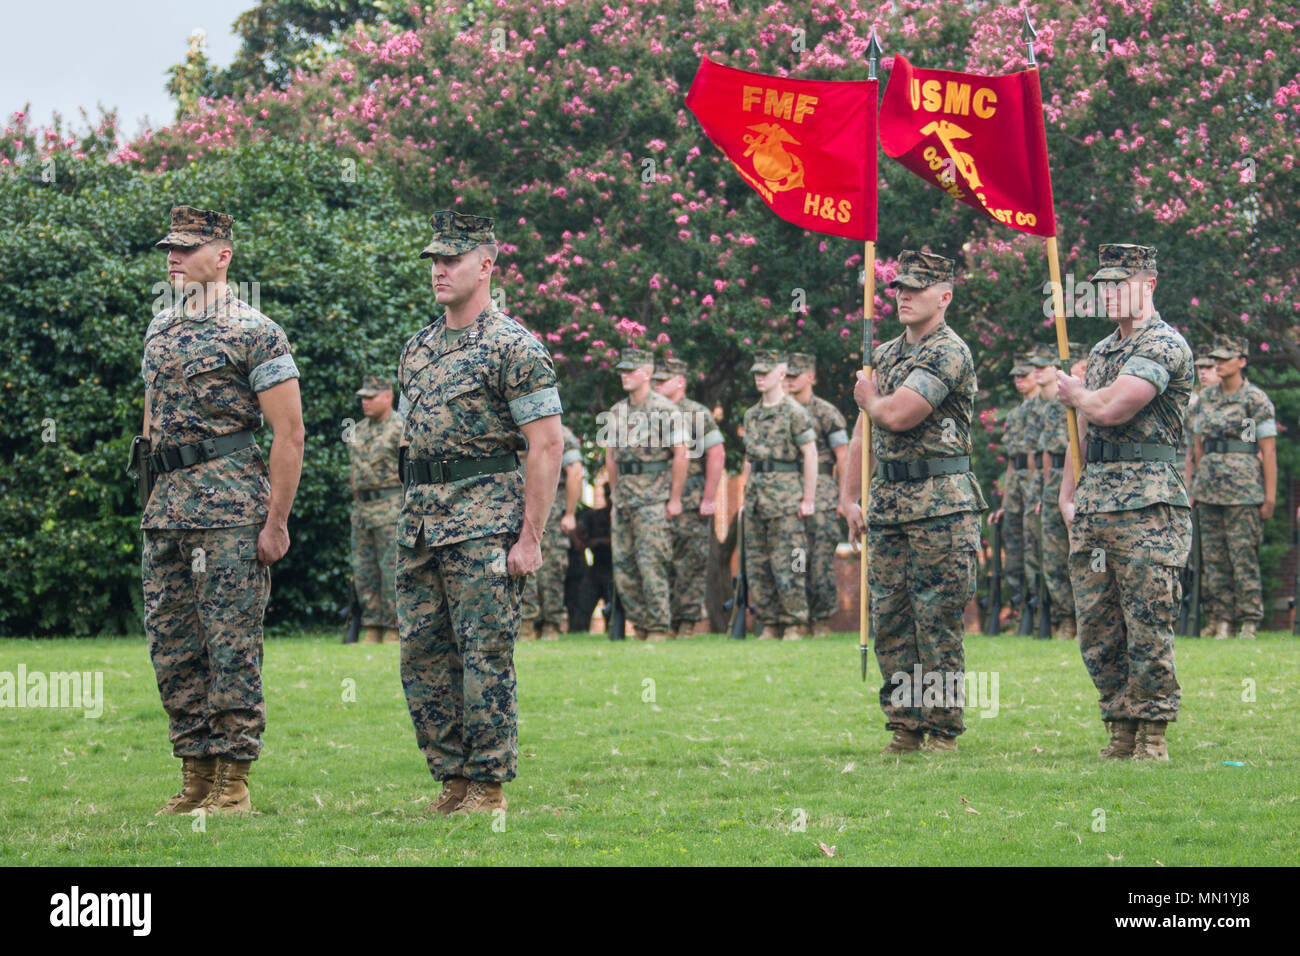 U.S. Marines with U.S. Marine Corps Forces Command stand at the position of attention during a change of command ceremony, Naval Support Activity Hampton Roads, Norfolk, Va., Aug. 14, 2017. Lt. Gen. John E. Wissler relinquished his command to Lt. Gen. Mark A. Brilakis. (U.S. Marine Corps photo by Cpl. Samantha K. Braun) Stock Photo